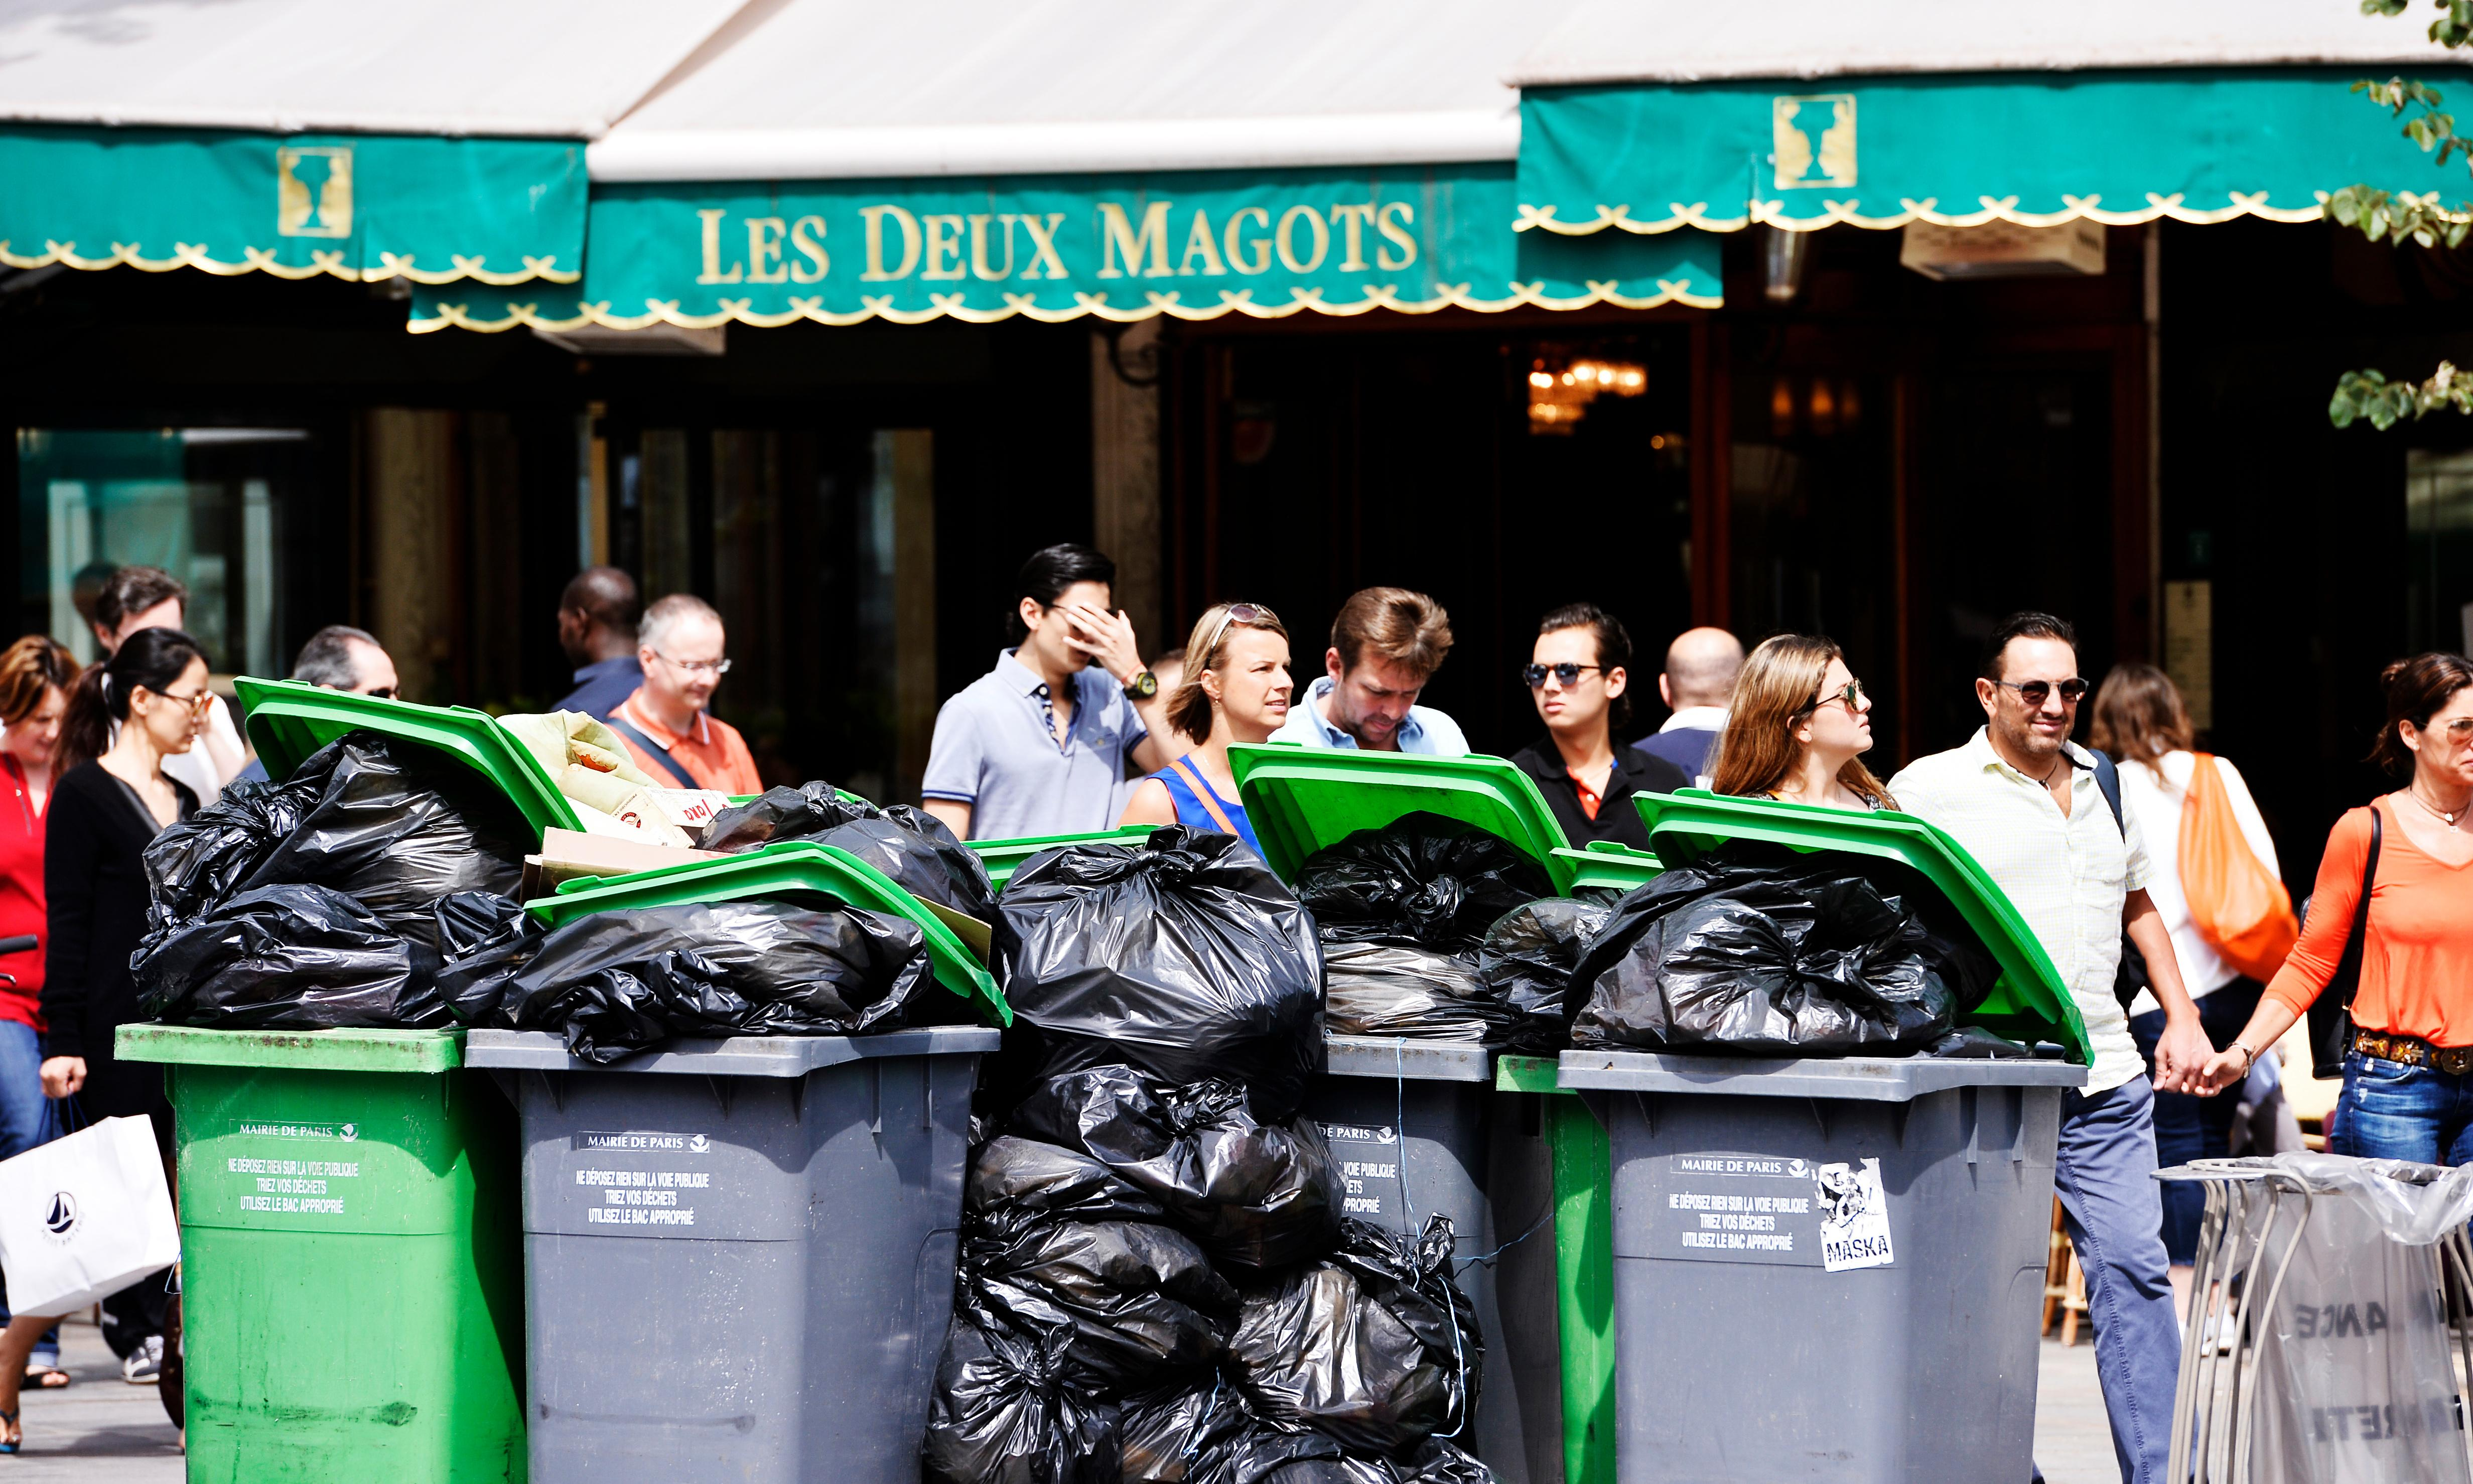 Paris, city of romance, rues new image as the dirty man of Europe